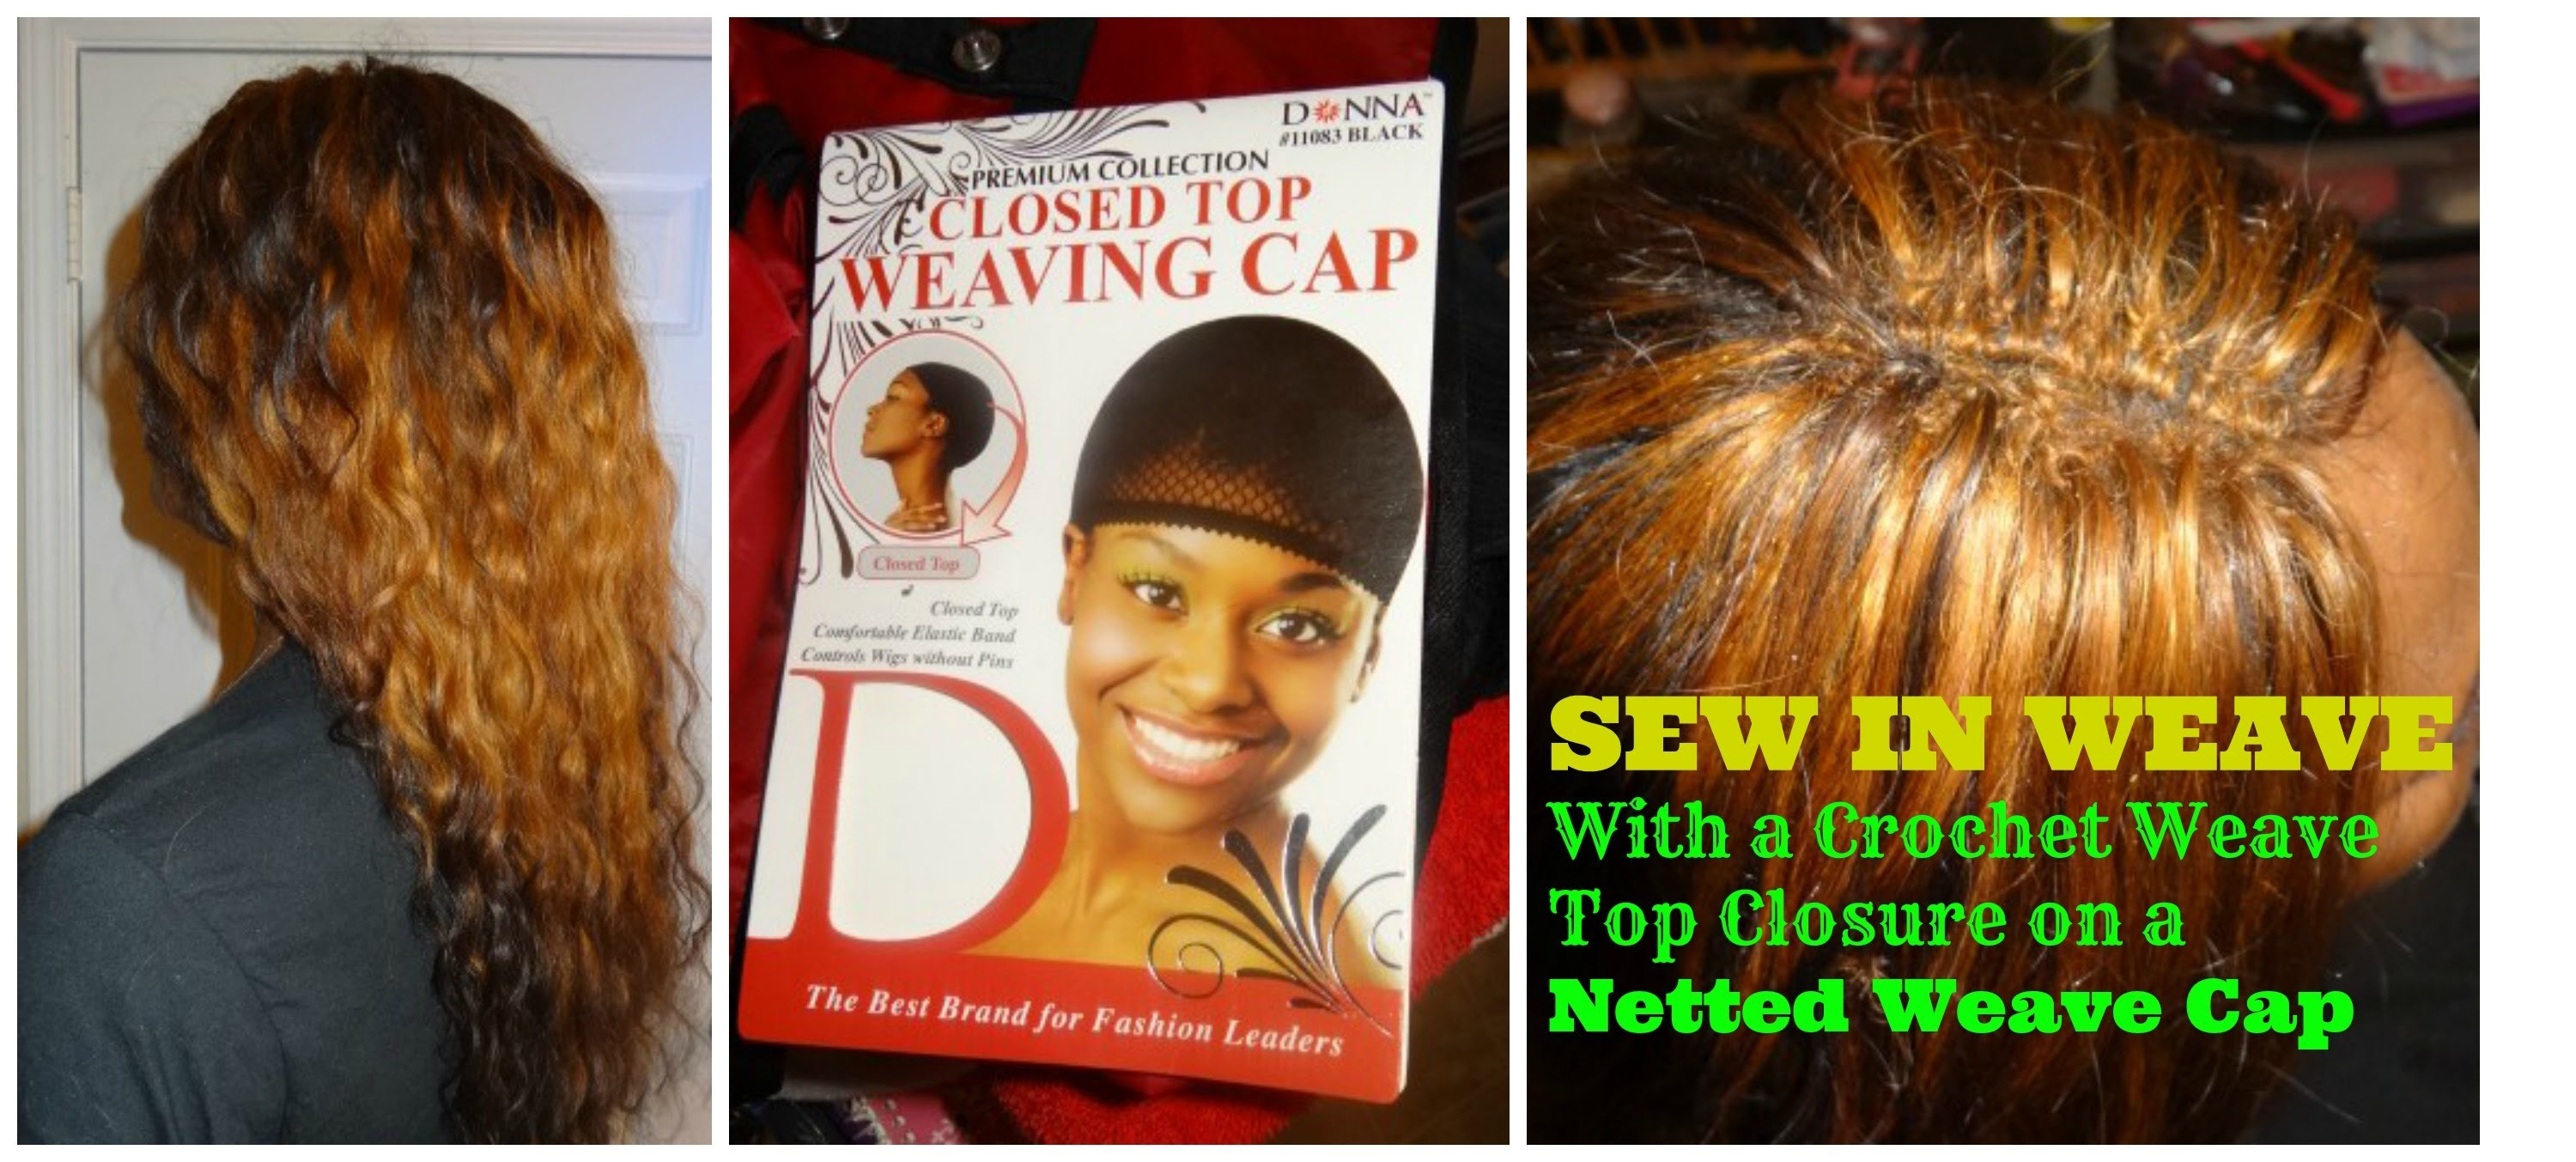 Sew In Weave w. Crochet Top Closure on a Netted Cap